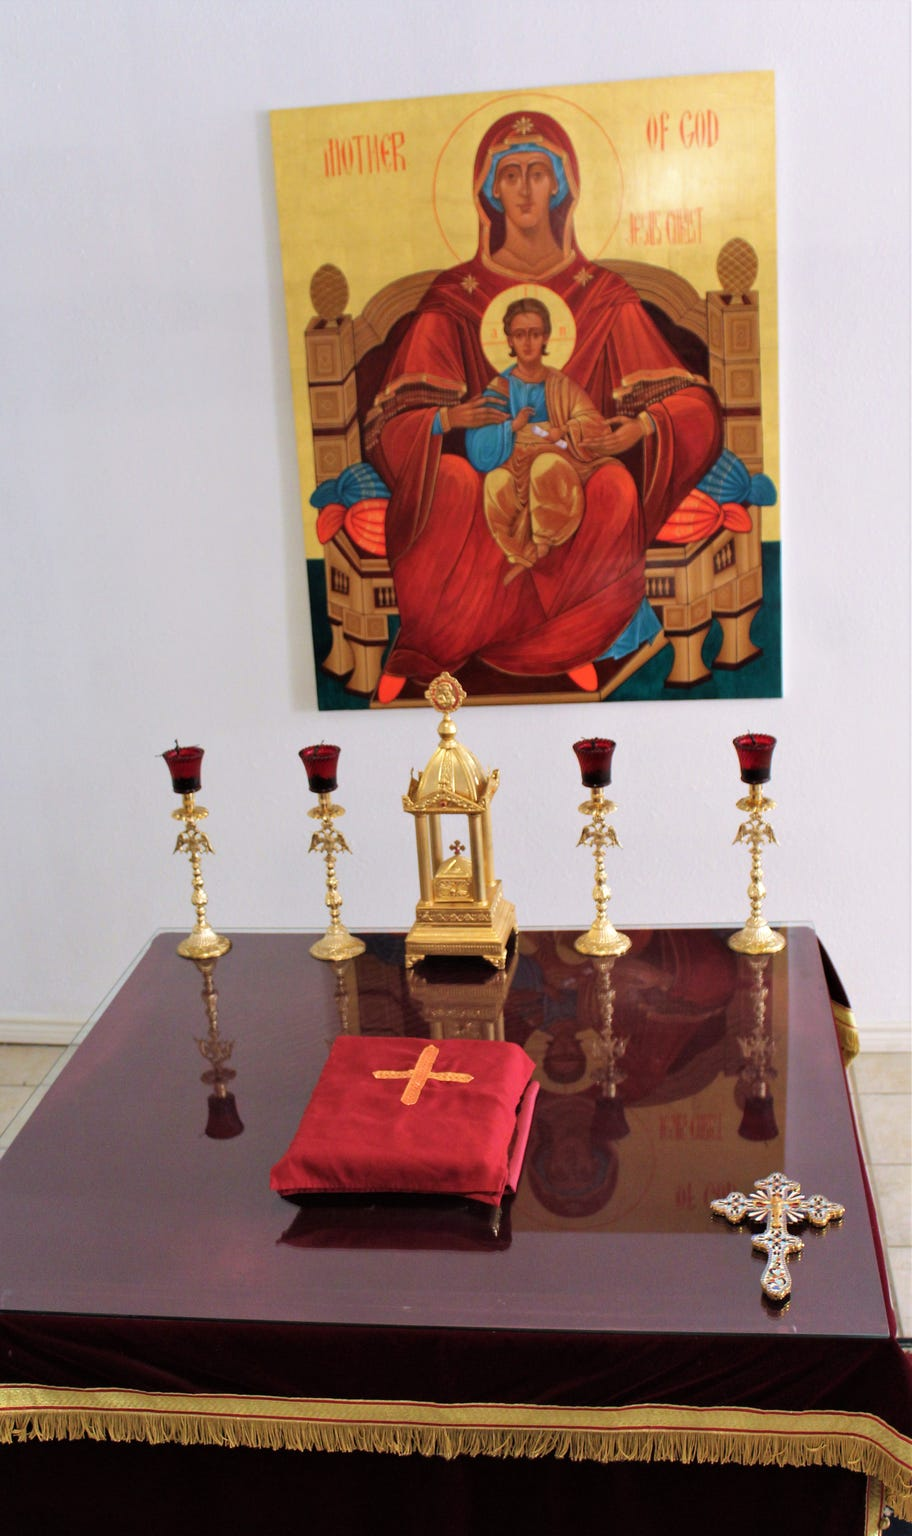 Theotokos, or Mother of God, is a new icon written by Linda Fowler. The 4 x 5-foot artwork was placed behind the altar at St. Luke Orthodox Church.